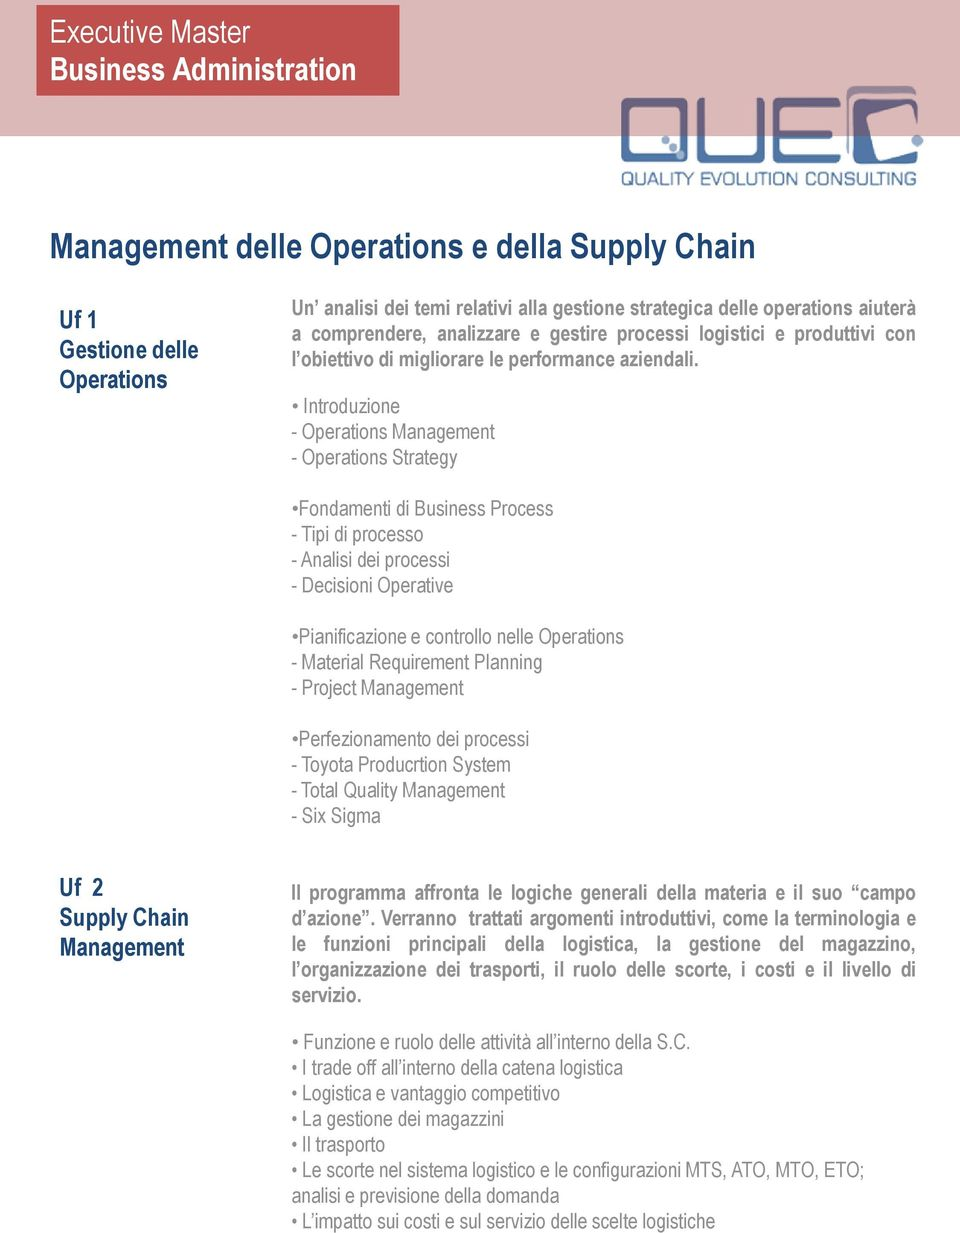 Introduzione - Operations Management - Operations Strategy Fondamenti di Business Process - Tipi di processo - Analisi dei processi - Decisioni Operative Pianificazione e controllo nelle Operations -